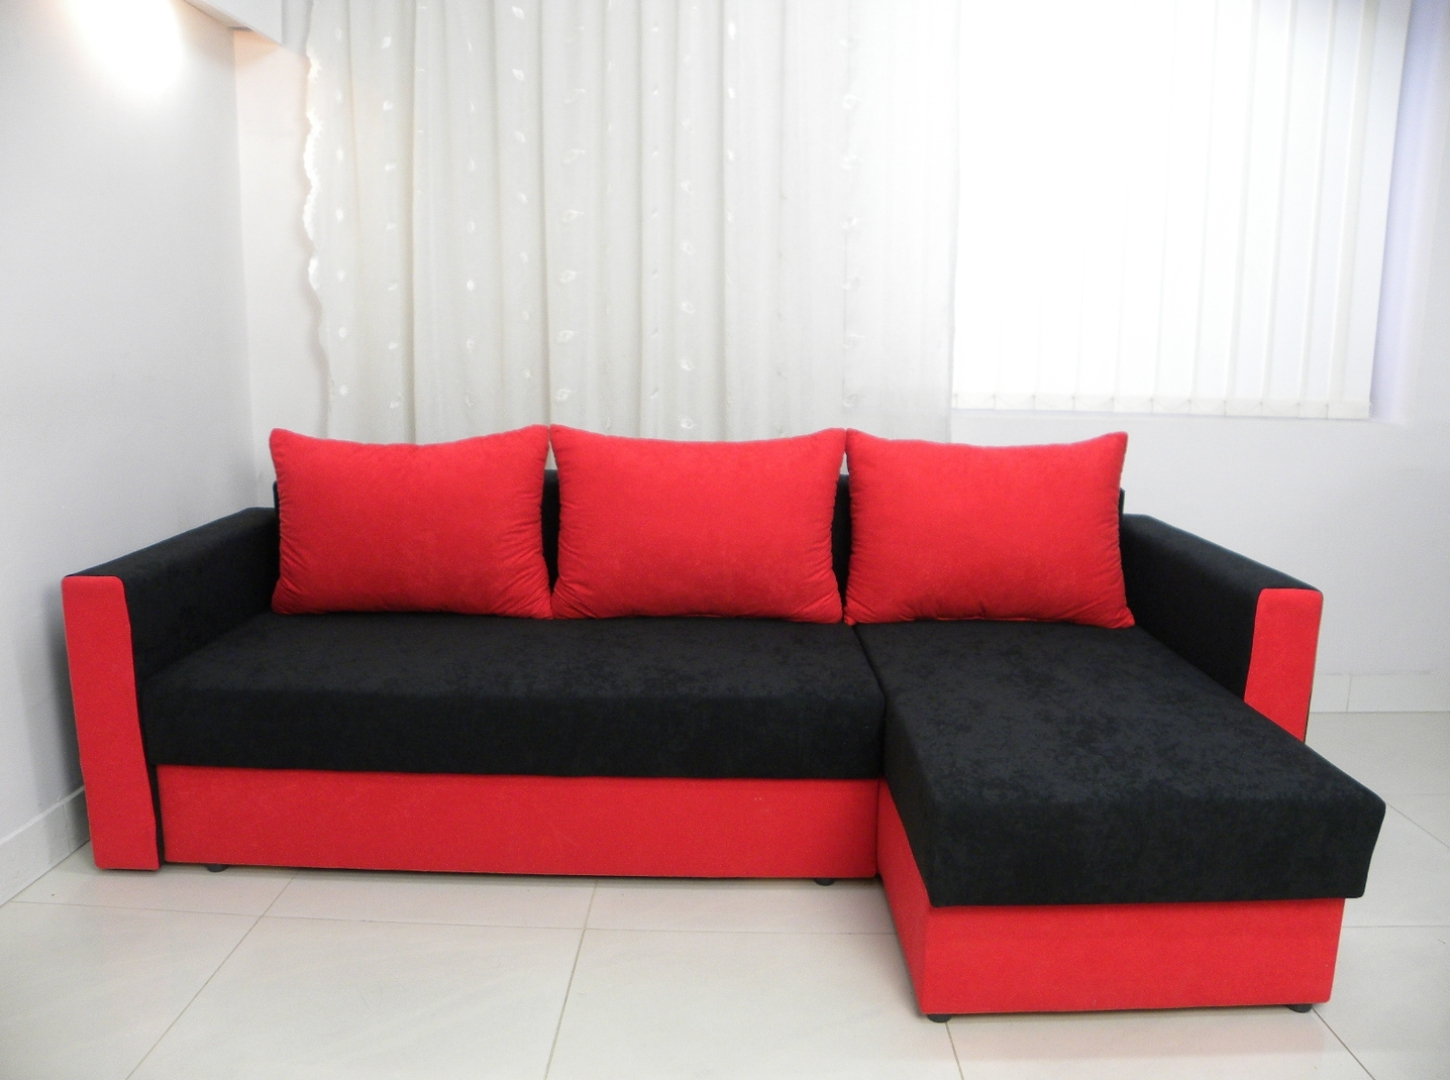 Red And Black Sofas Pertaining To Well Known Home Decor Red And Black Sofas Fabric Sofa Loveseat Set Fabricred (View 14 of 20)